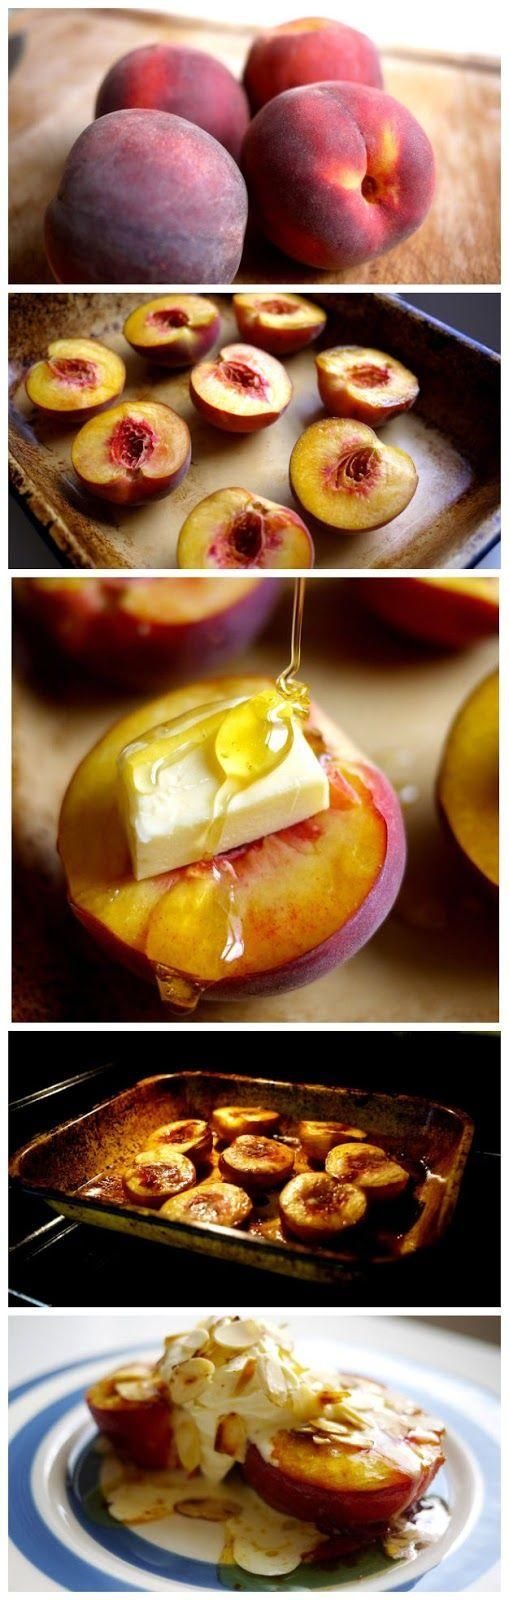 Honey Roast Peaches - Wish I wasn't allergic to honey!But you could always use agave or maple syrup, Im glade theirs substitutes!